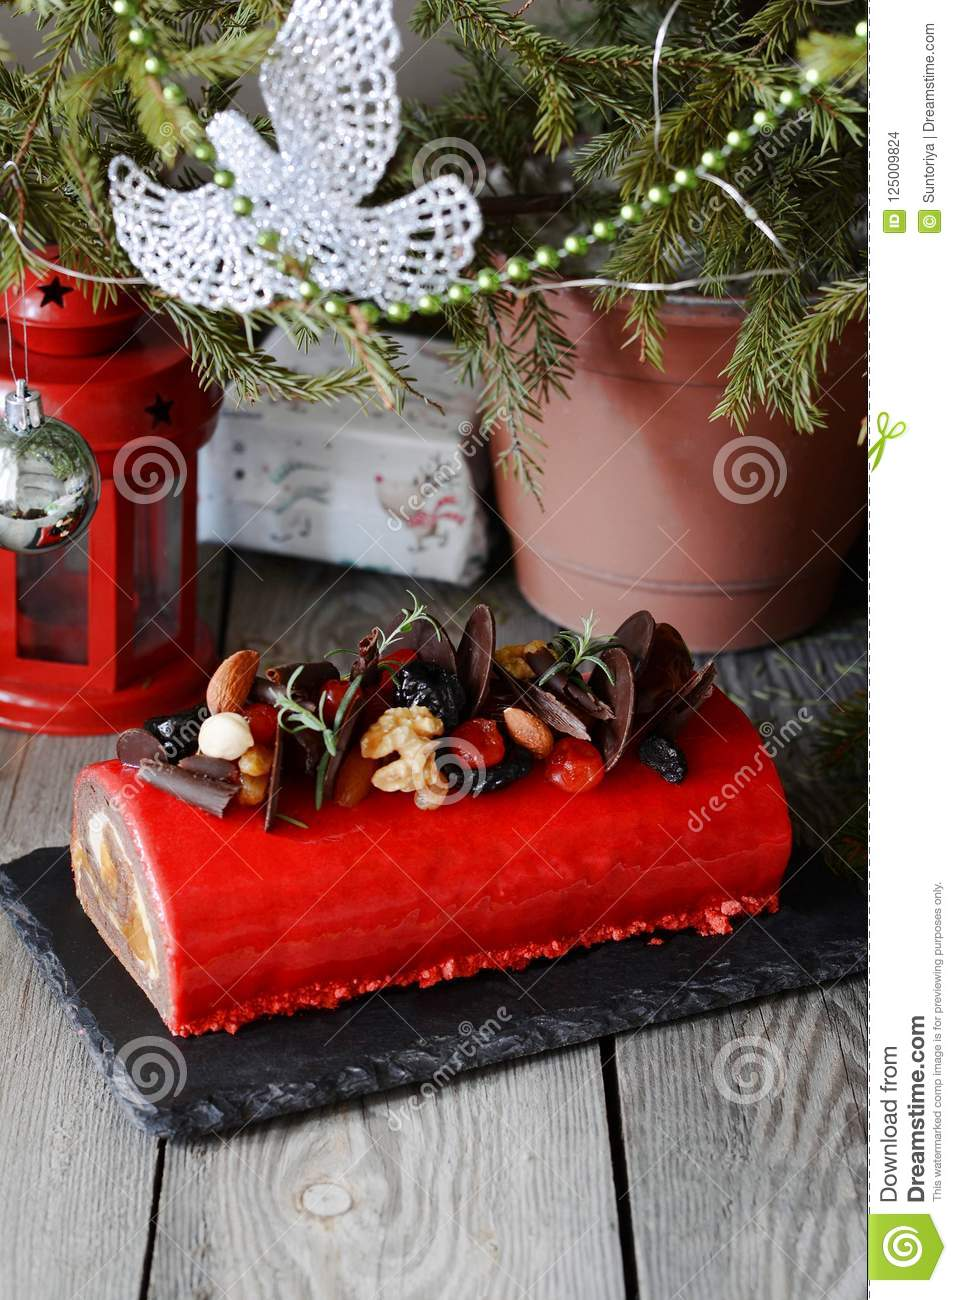 Chocolate Yule Log Christmas Cake On Wooden Background. Traditional ...